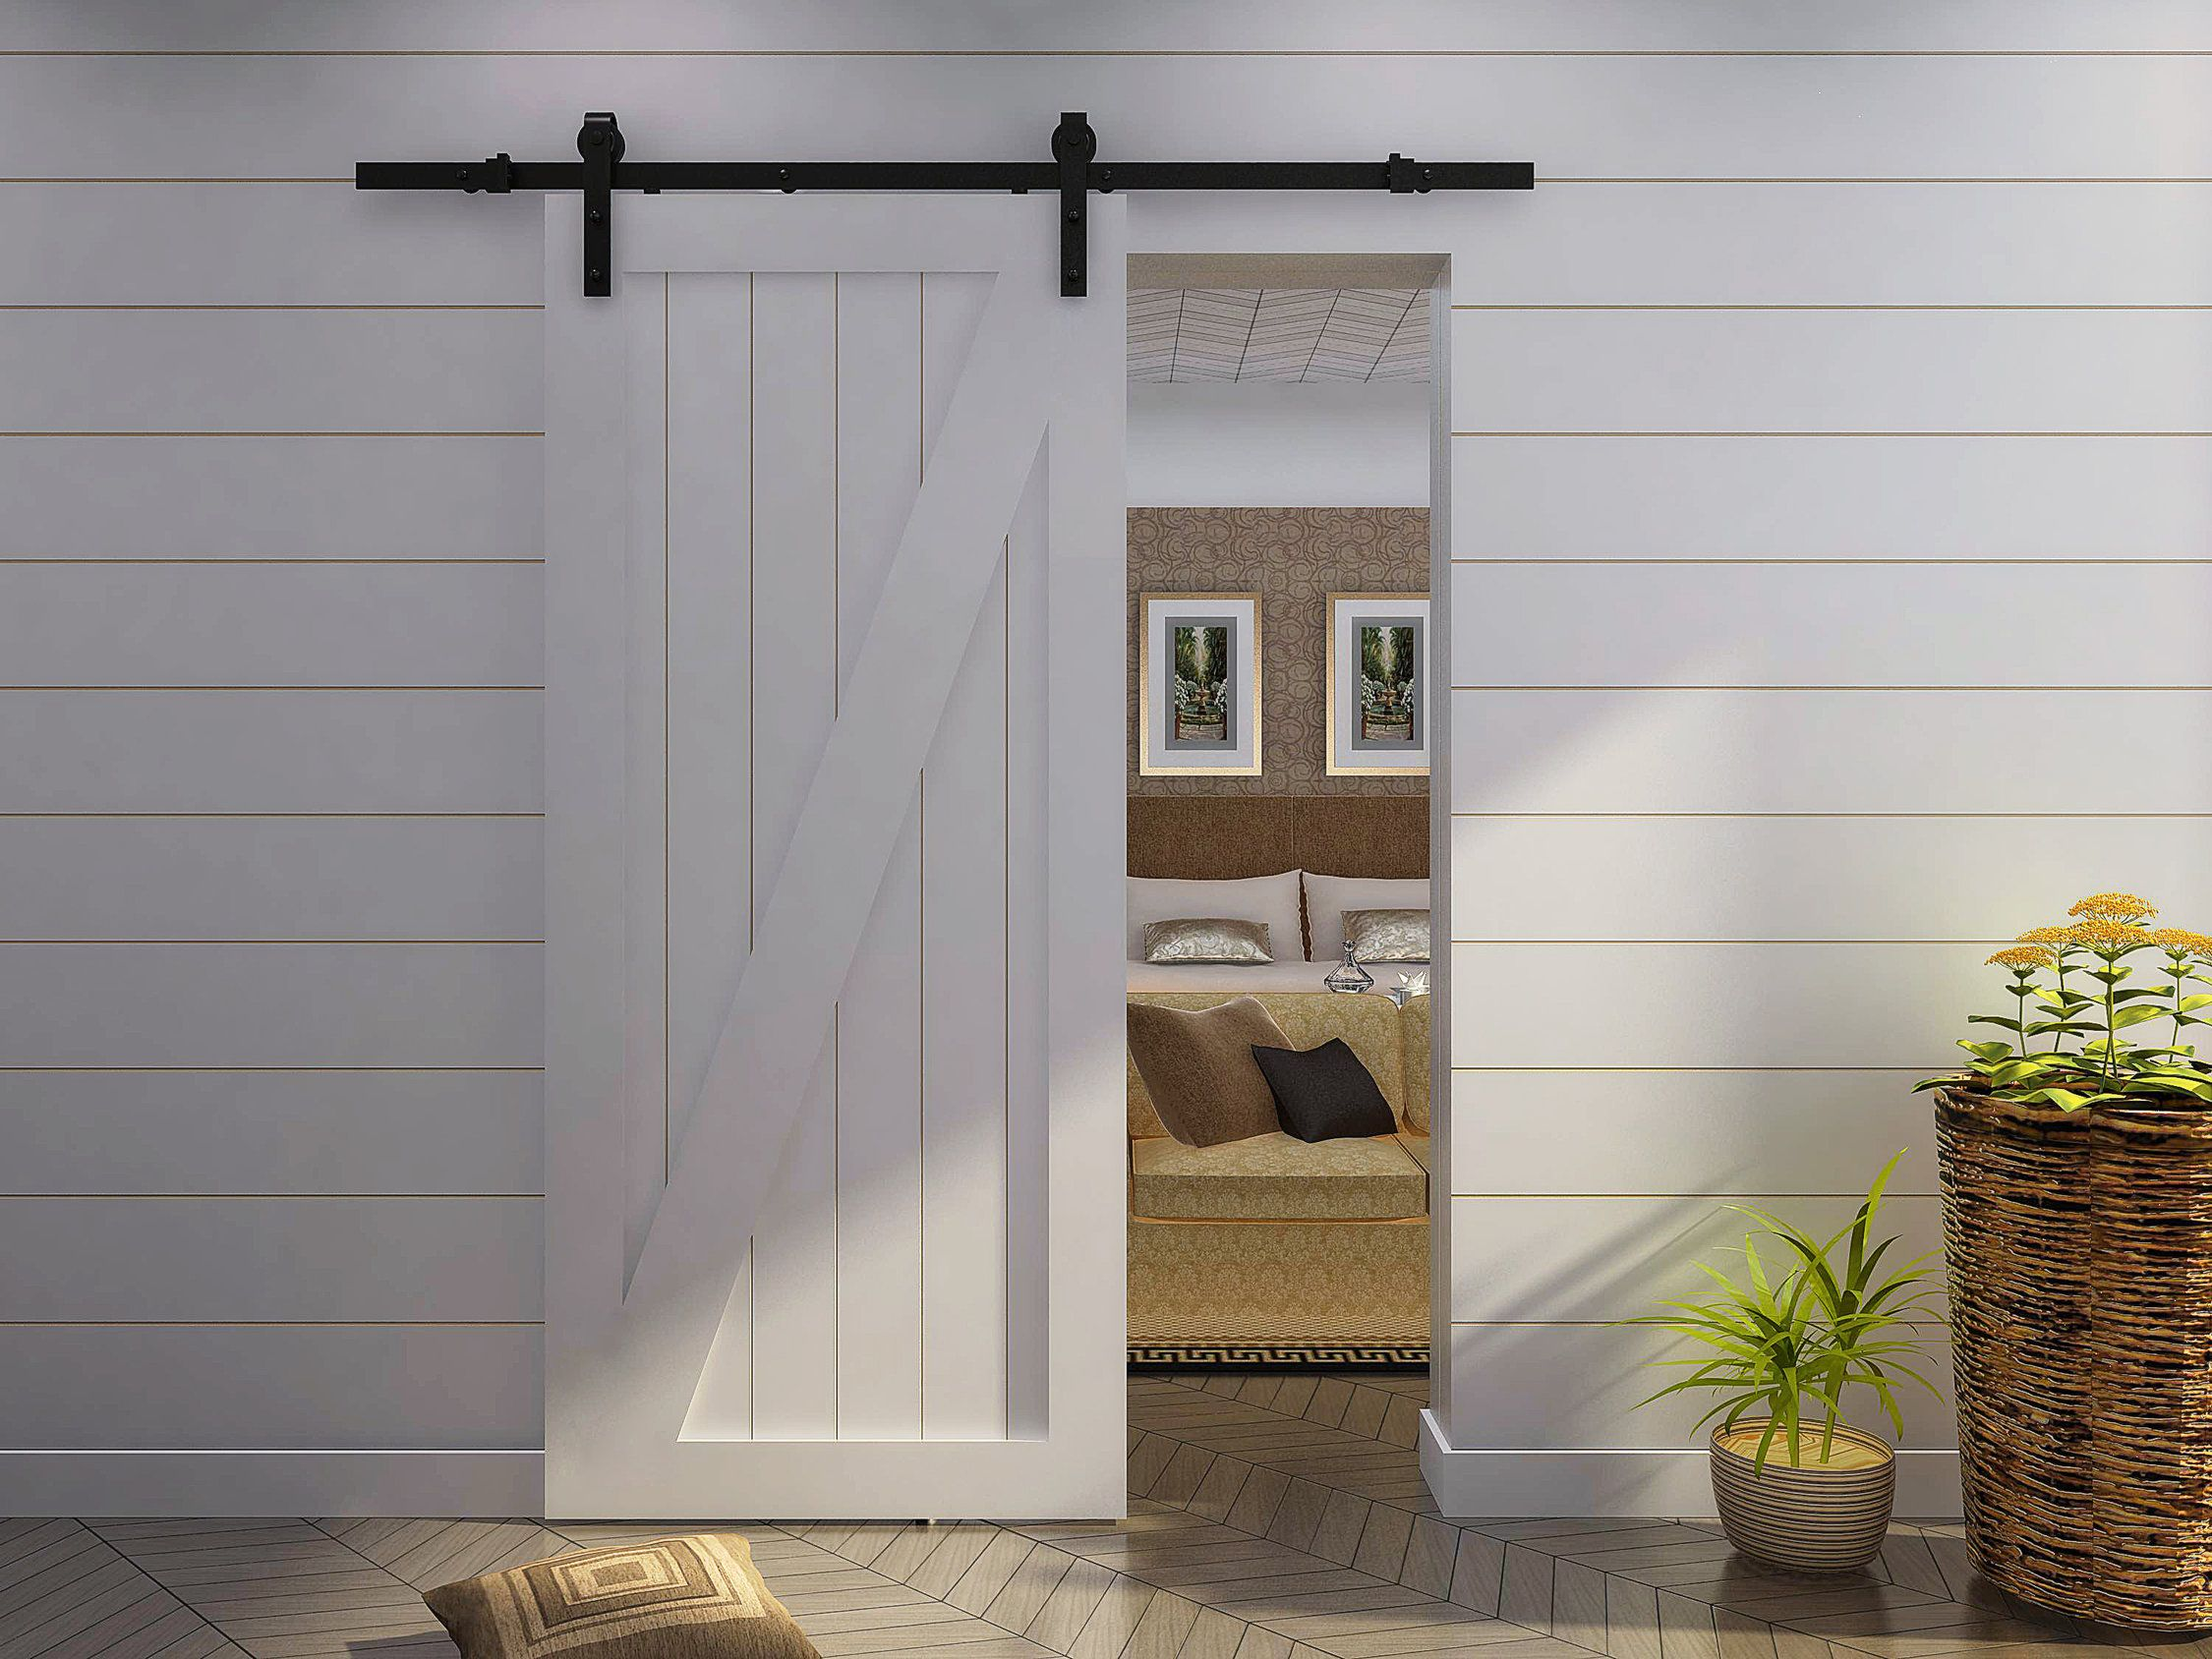 Create Beautiful Space Using Barn Doors Interior  Barndoor Hardware With Barn  Doors Interior For Home. 25  best Interior sliding barn doors ideas on Pinterest   Interior